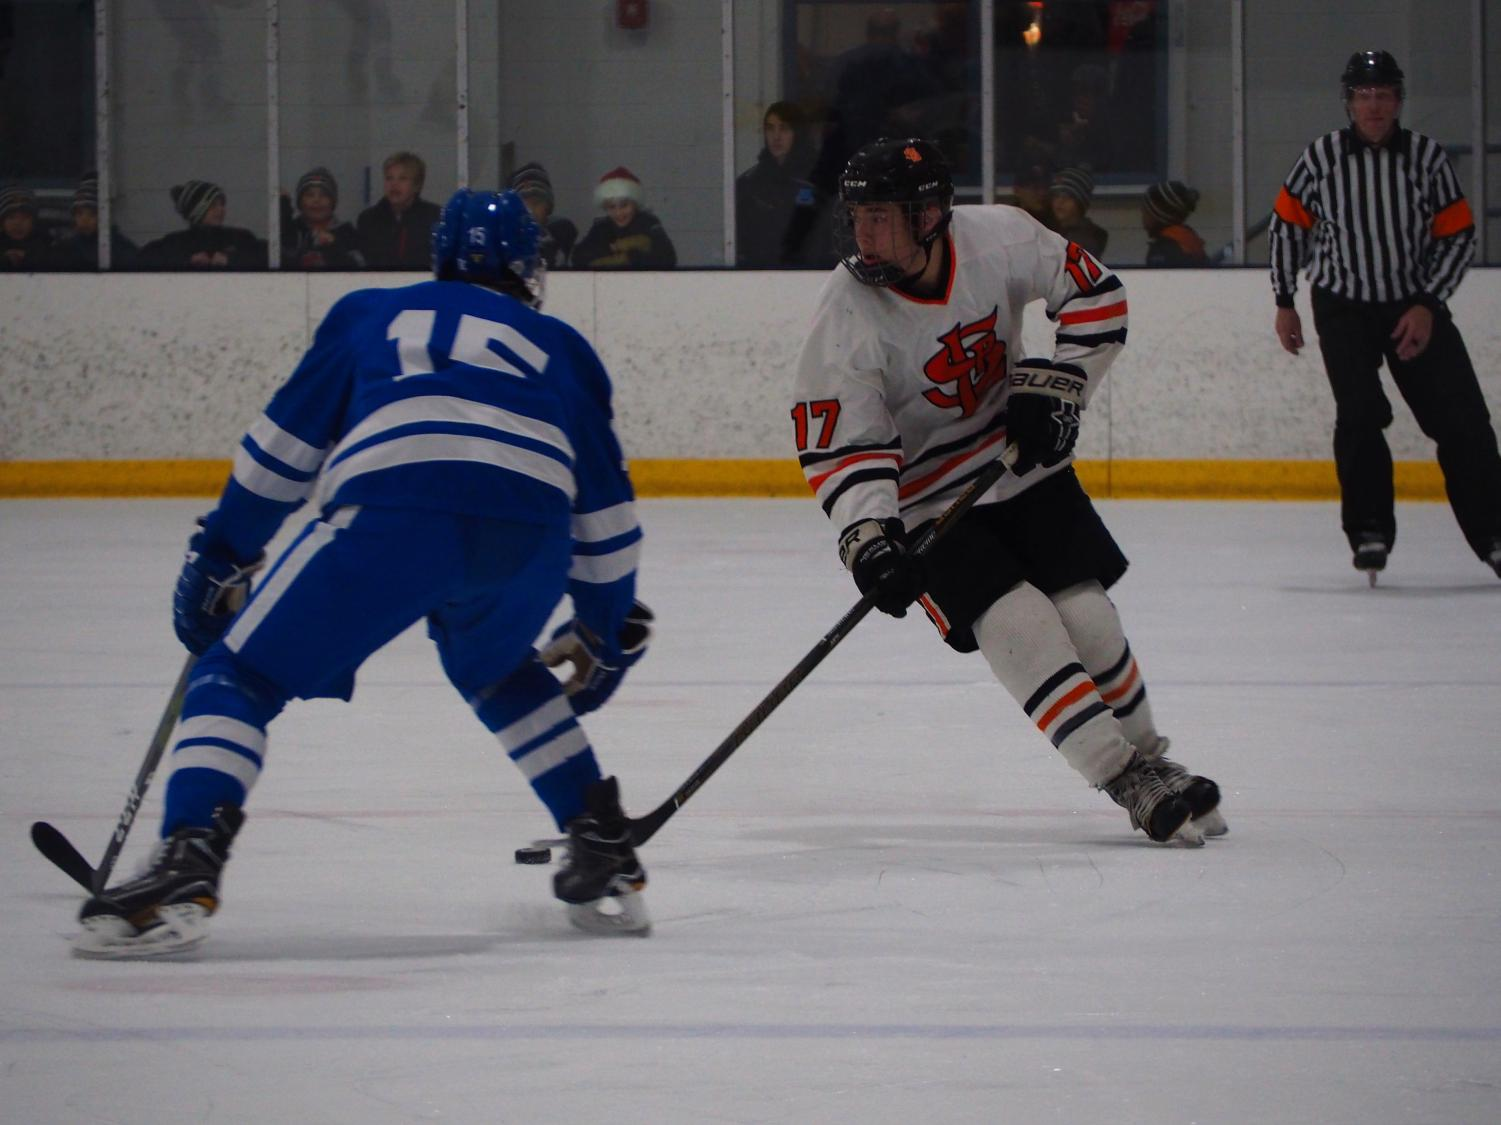 Sophomore Drew Boyum looks for an open player to pass to as sophomore Duke Kiffin attempts to take the puck. Minnetonka beat Park 8-1 December 6.